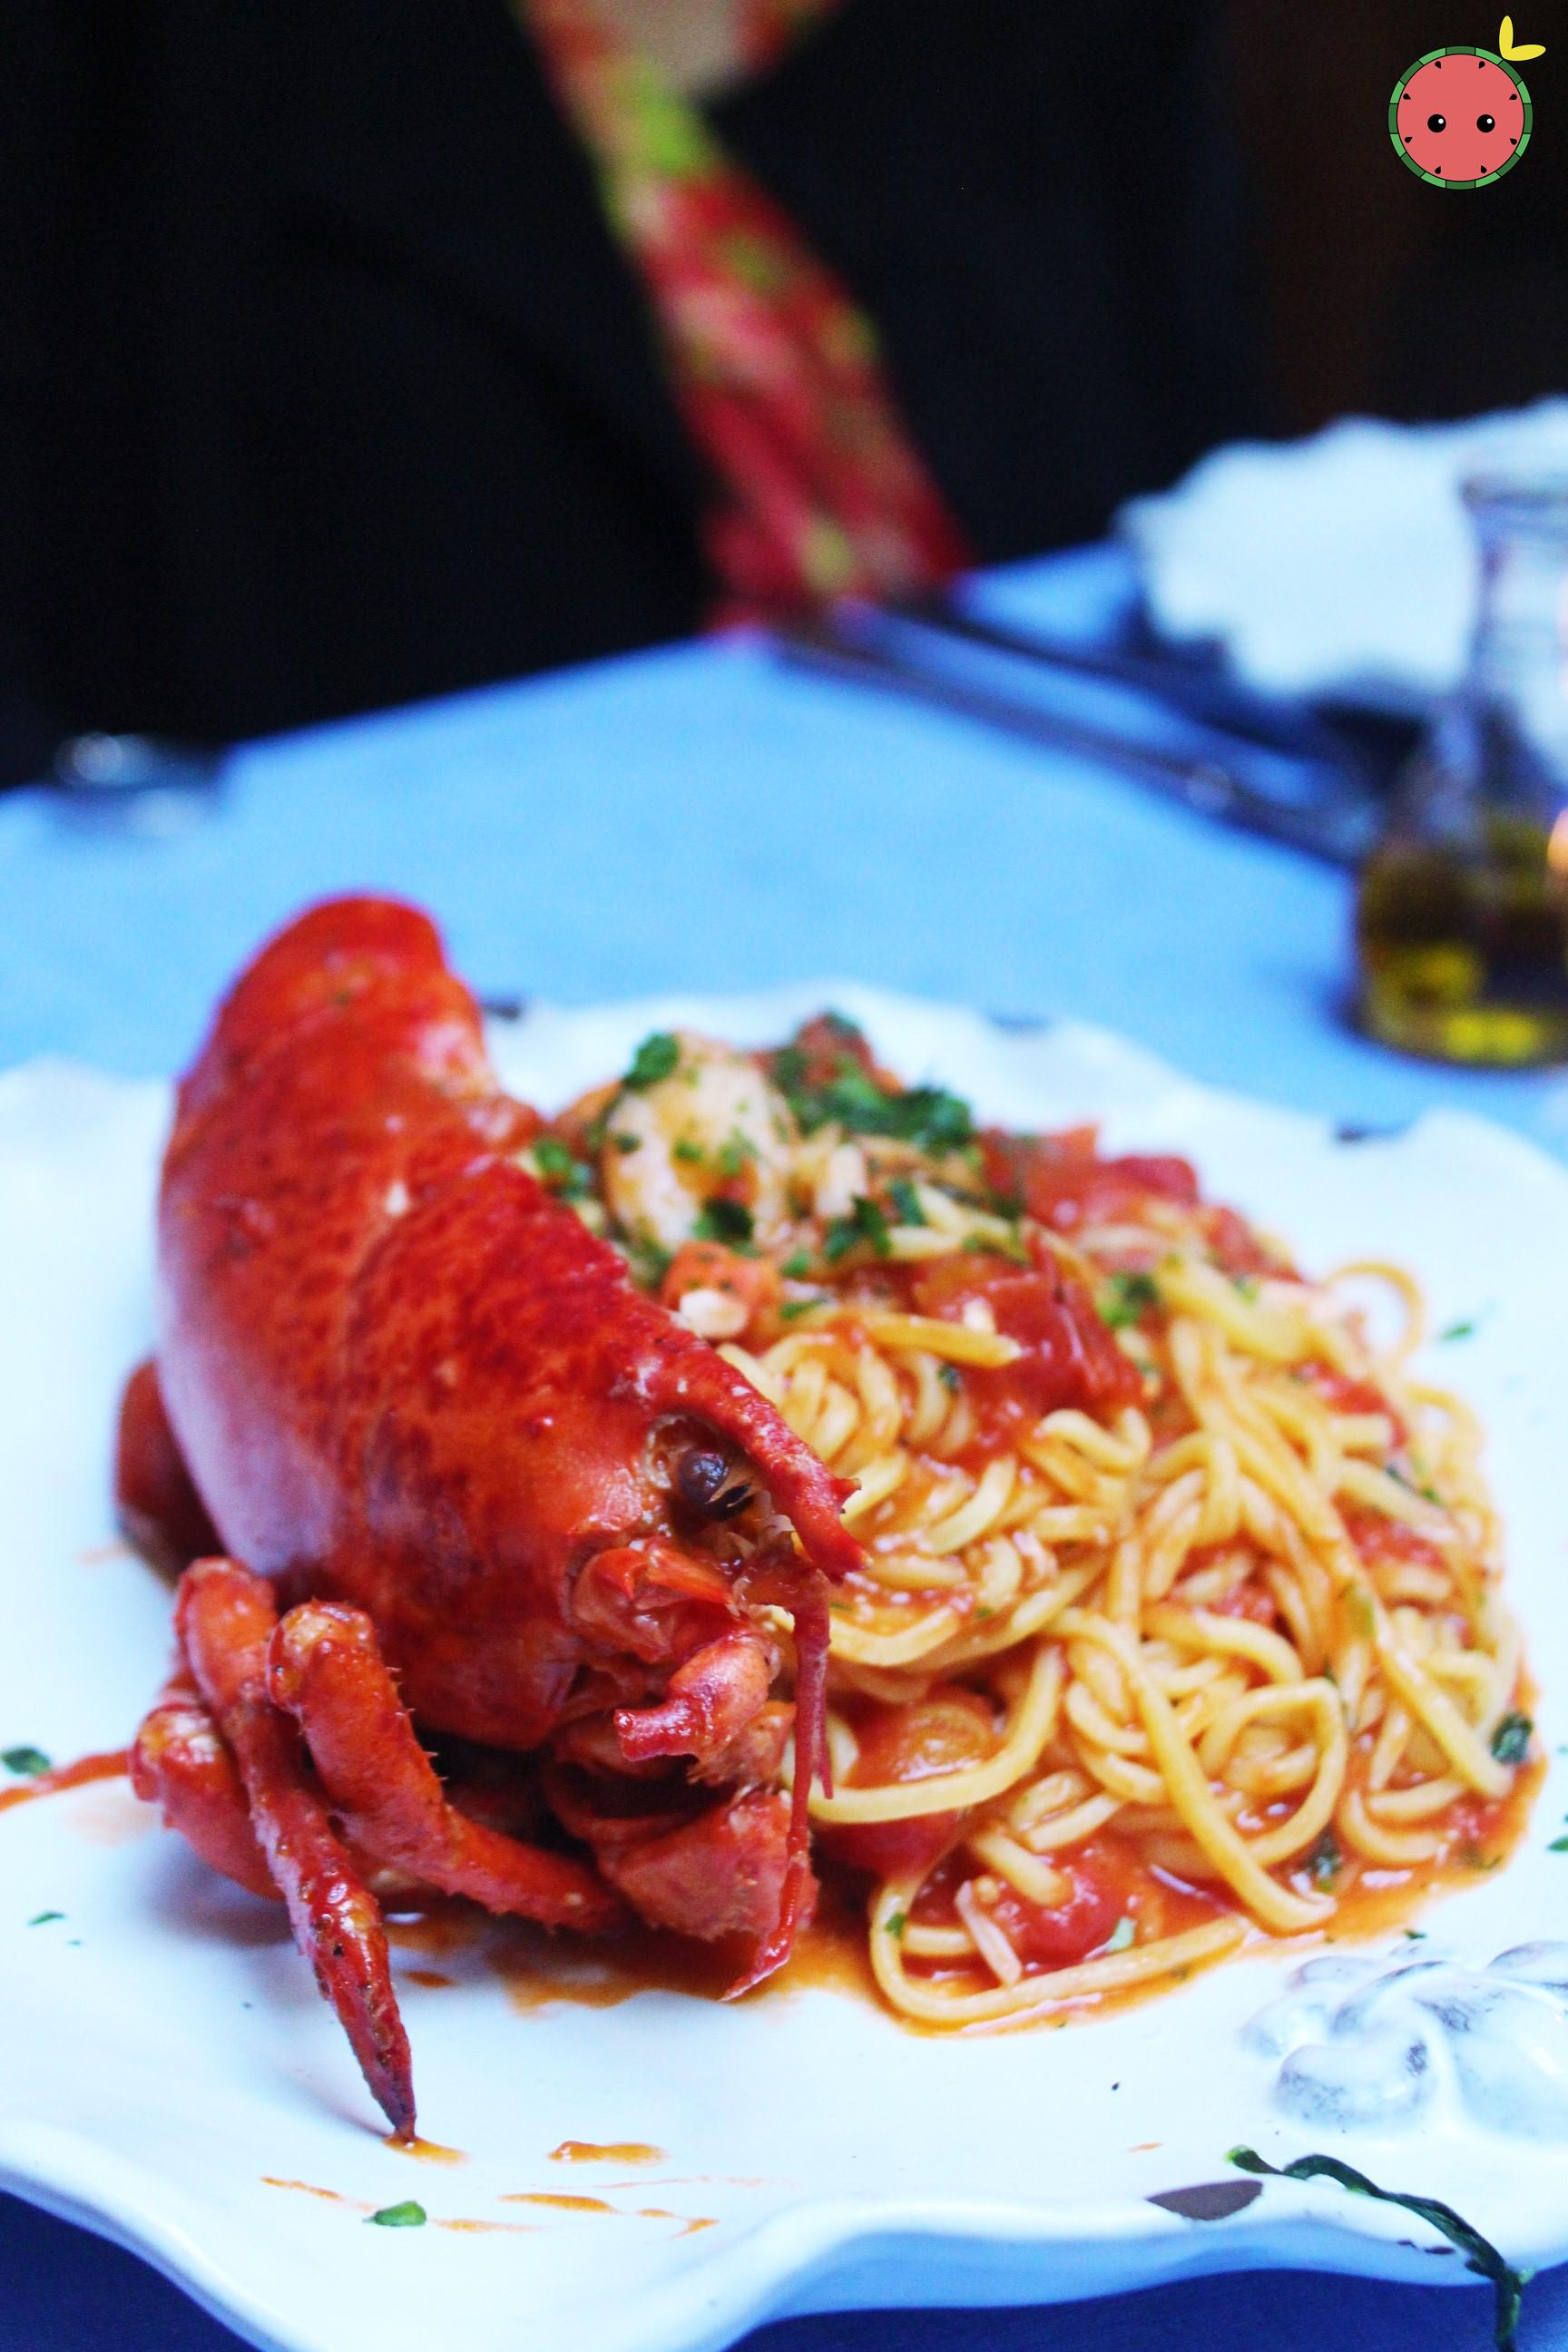 Spaghetti all'Astice 2 - Half Maine lobster with homemade spaghetti in a sauce of lobster, cherry to